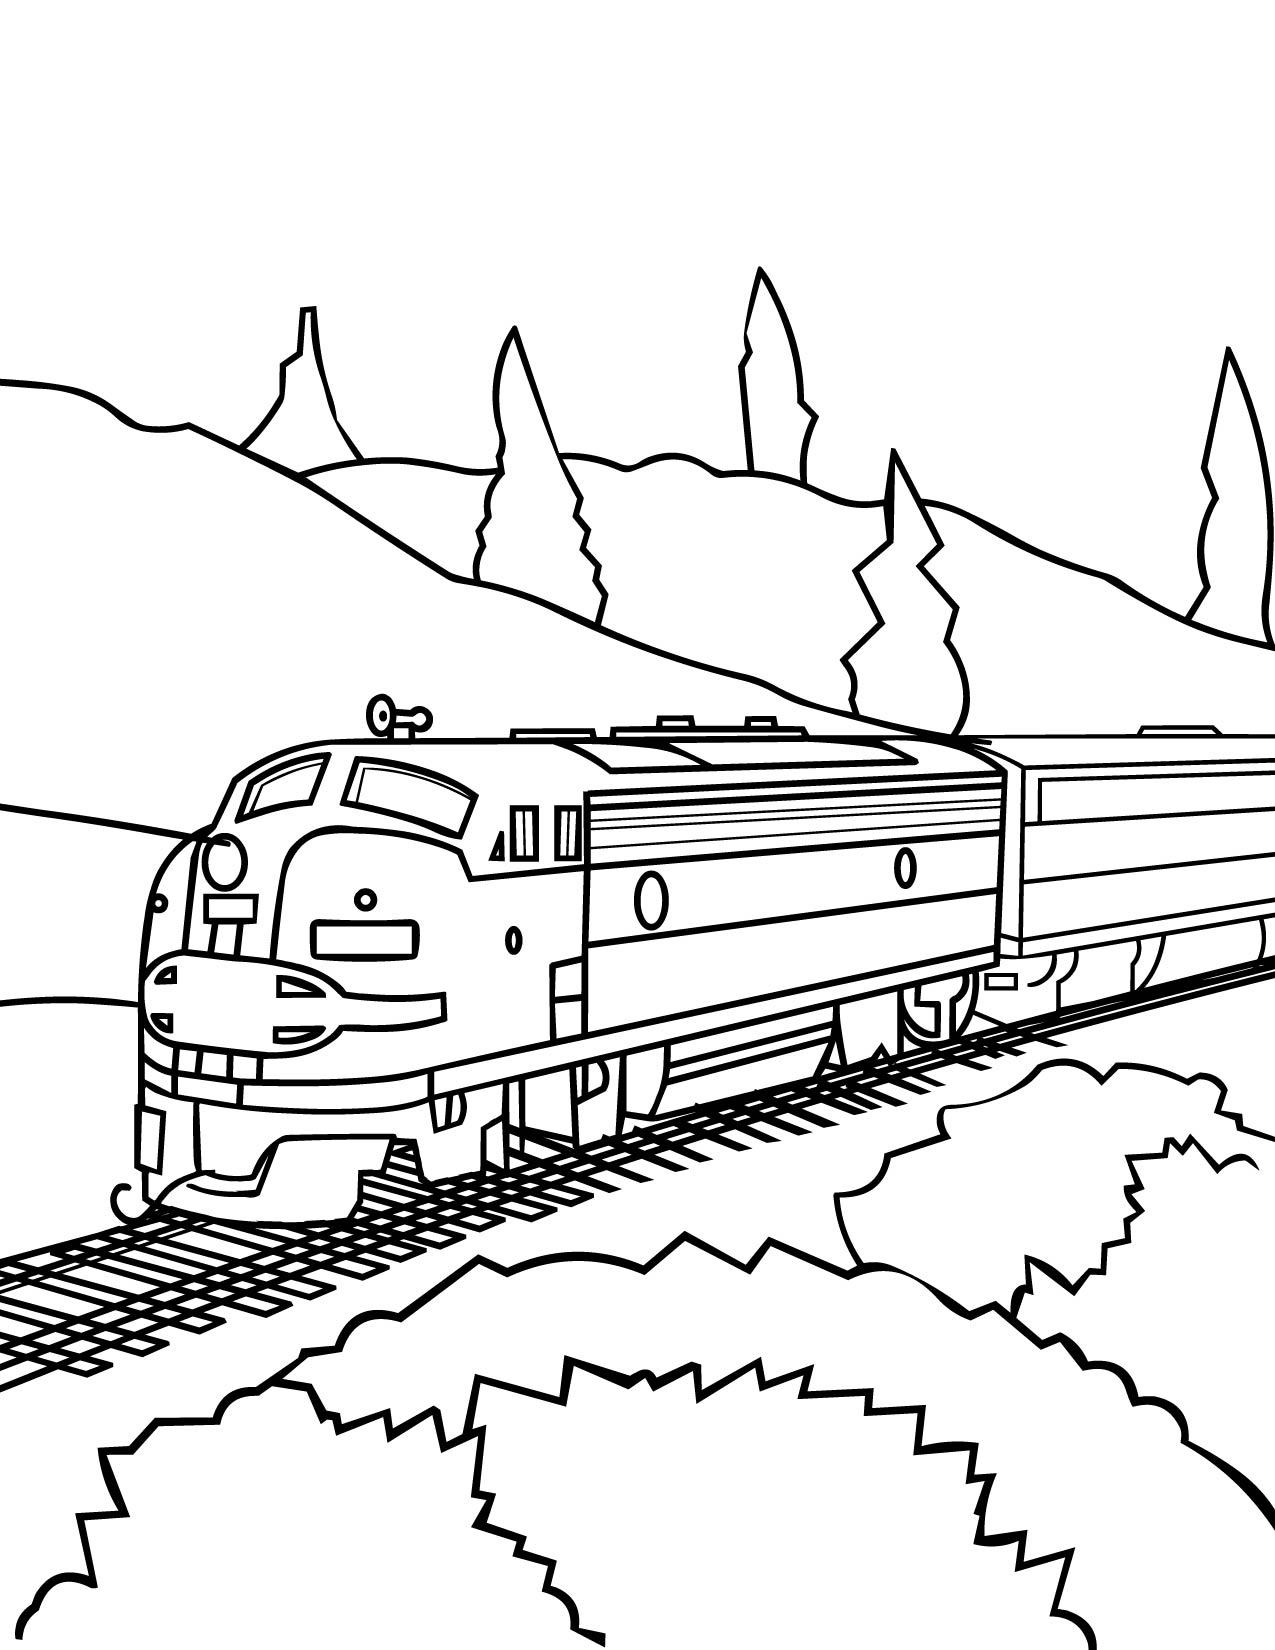 Train Outline Drawing at GetDrawings.com | Free for personal use ...